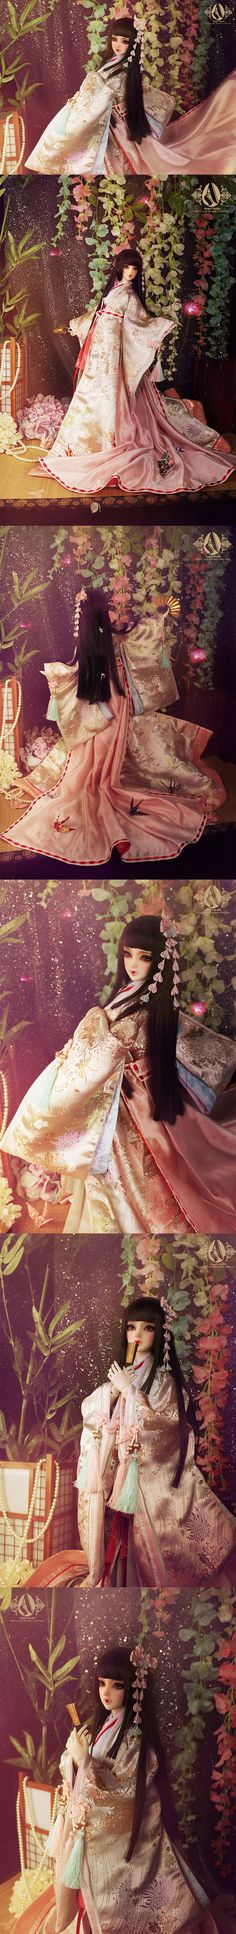 (AS Agency)BJD Bing Yu-F Girl 62cm Ball-Jointed Doll_SD size doll_Angell Studio_DOLL_Ball Jointed Dolls (BJD) company-Legenddoll